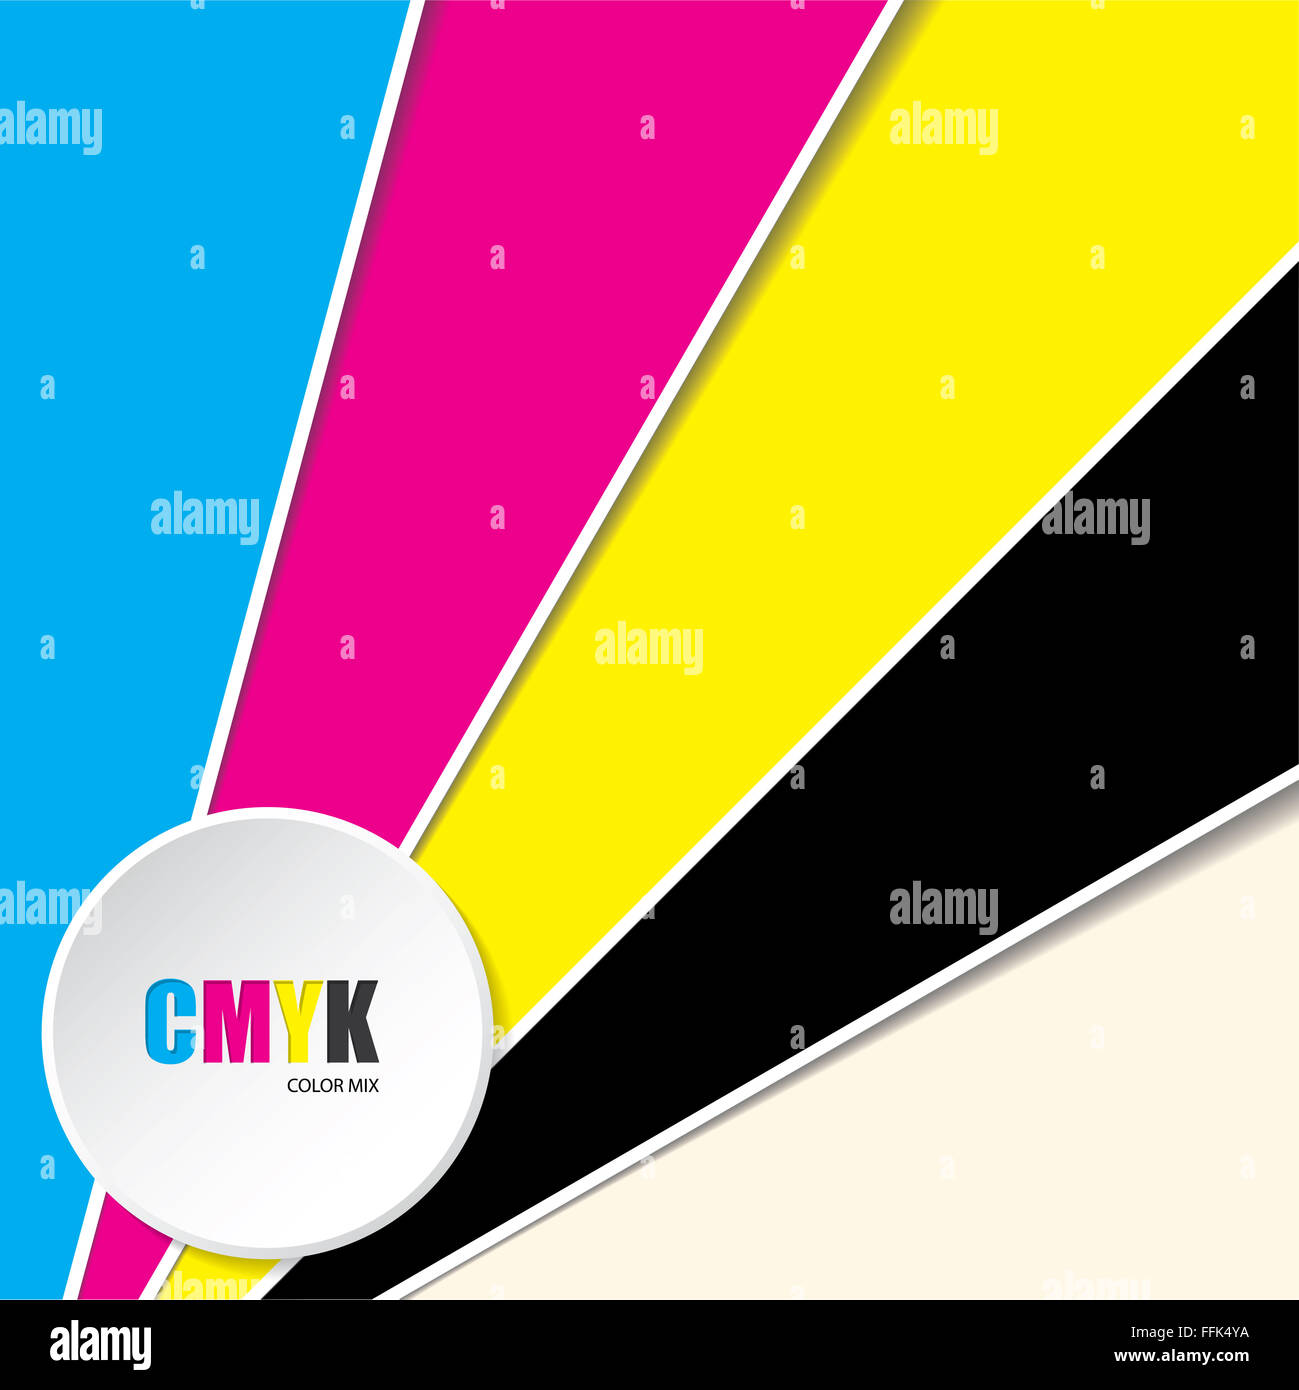 Abstract cmyk background with 3d button and CMYK text - Stock Image